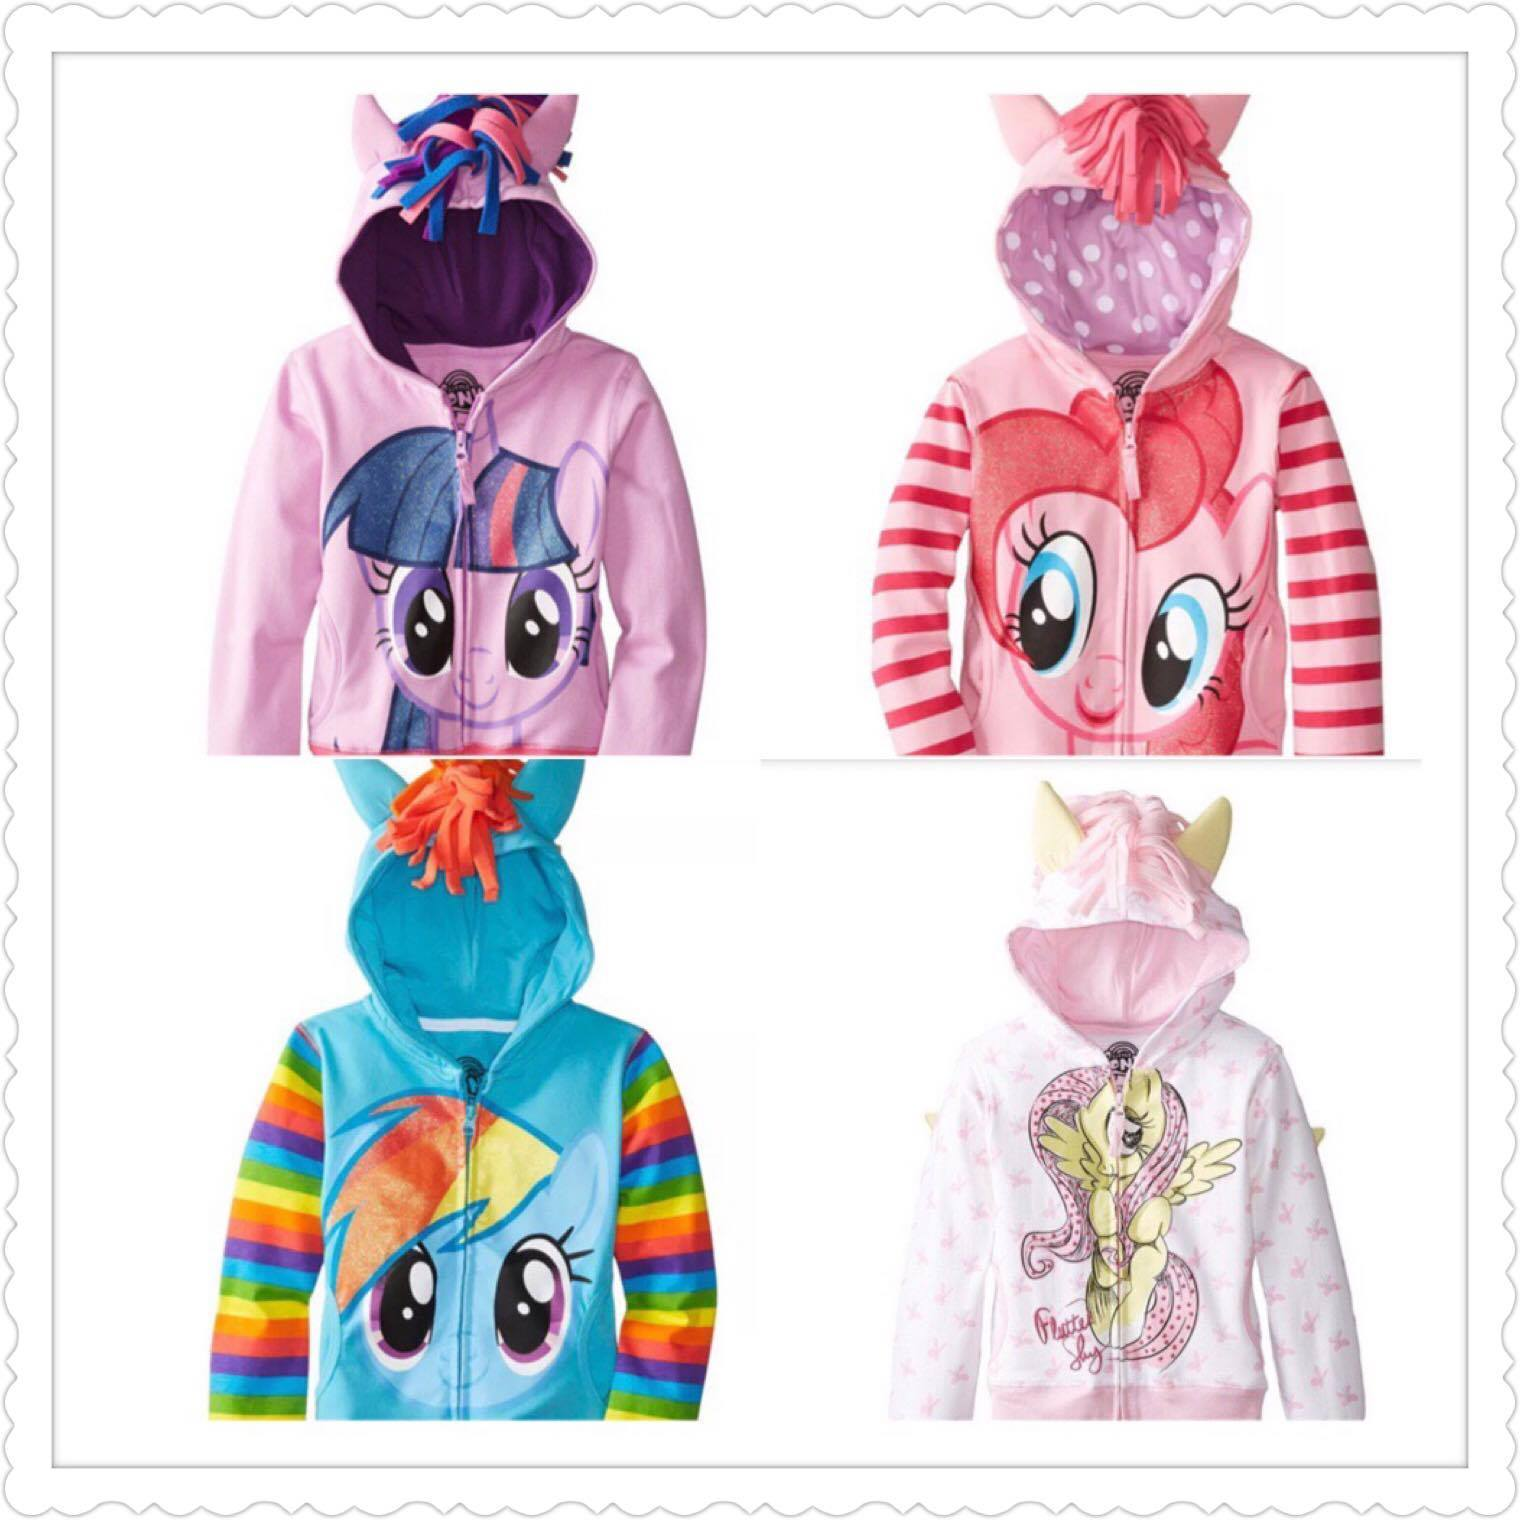 6b62f3ad4 My Little Pony Jackets Wind Breaker Sweater Hoodie READY STOCK Singapore  Seller FAST DELIVERY